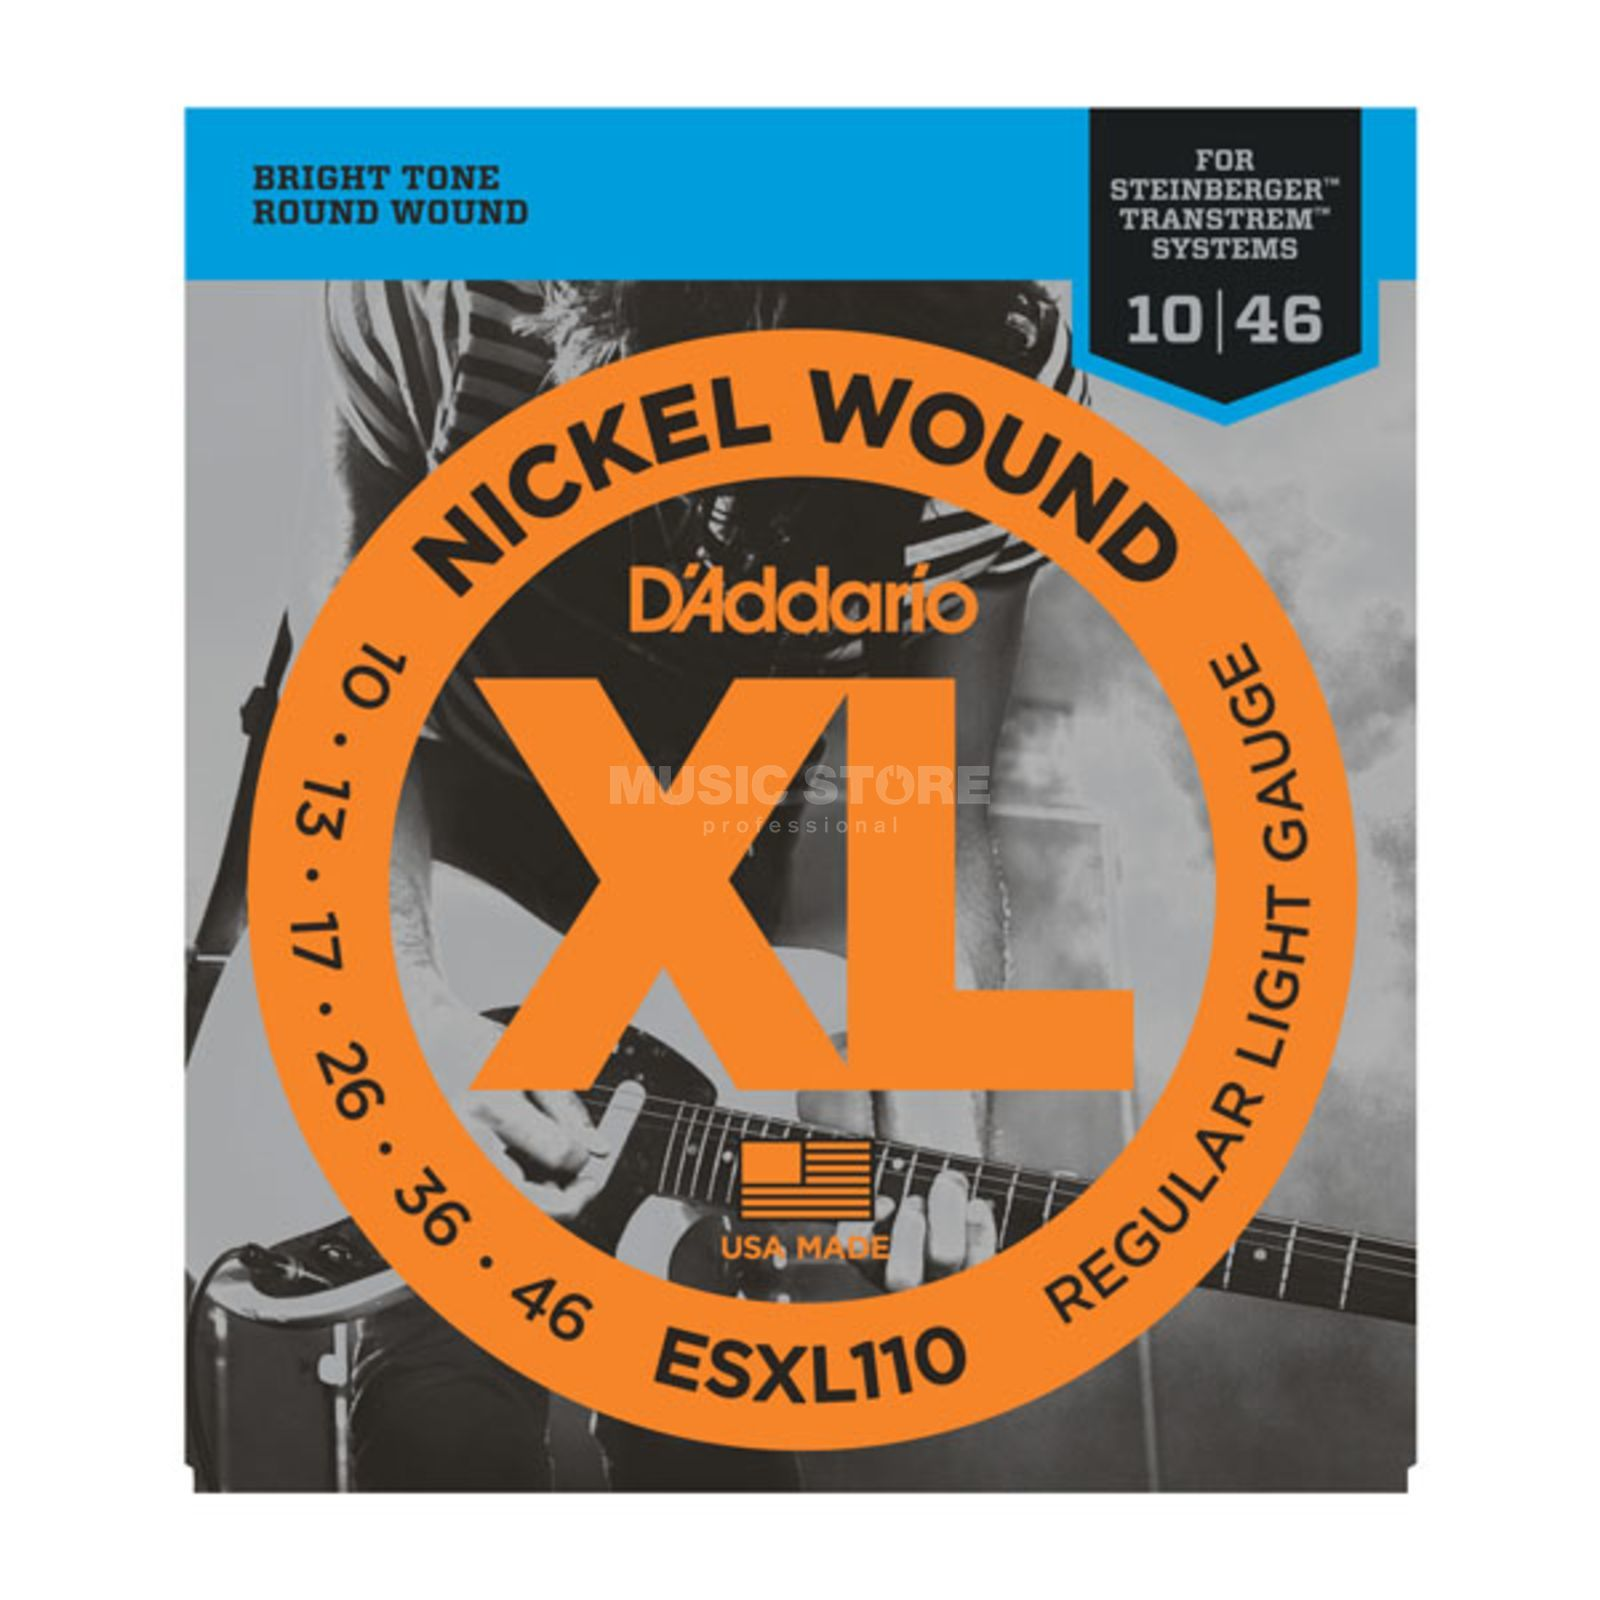 D'Addario Double Ball Saiten ESXL110 10-46 Nickel Wound Produktbild